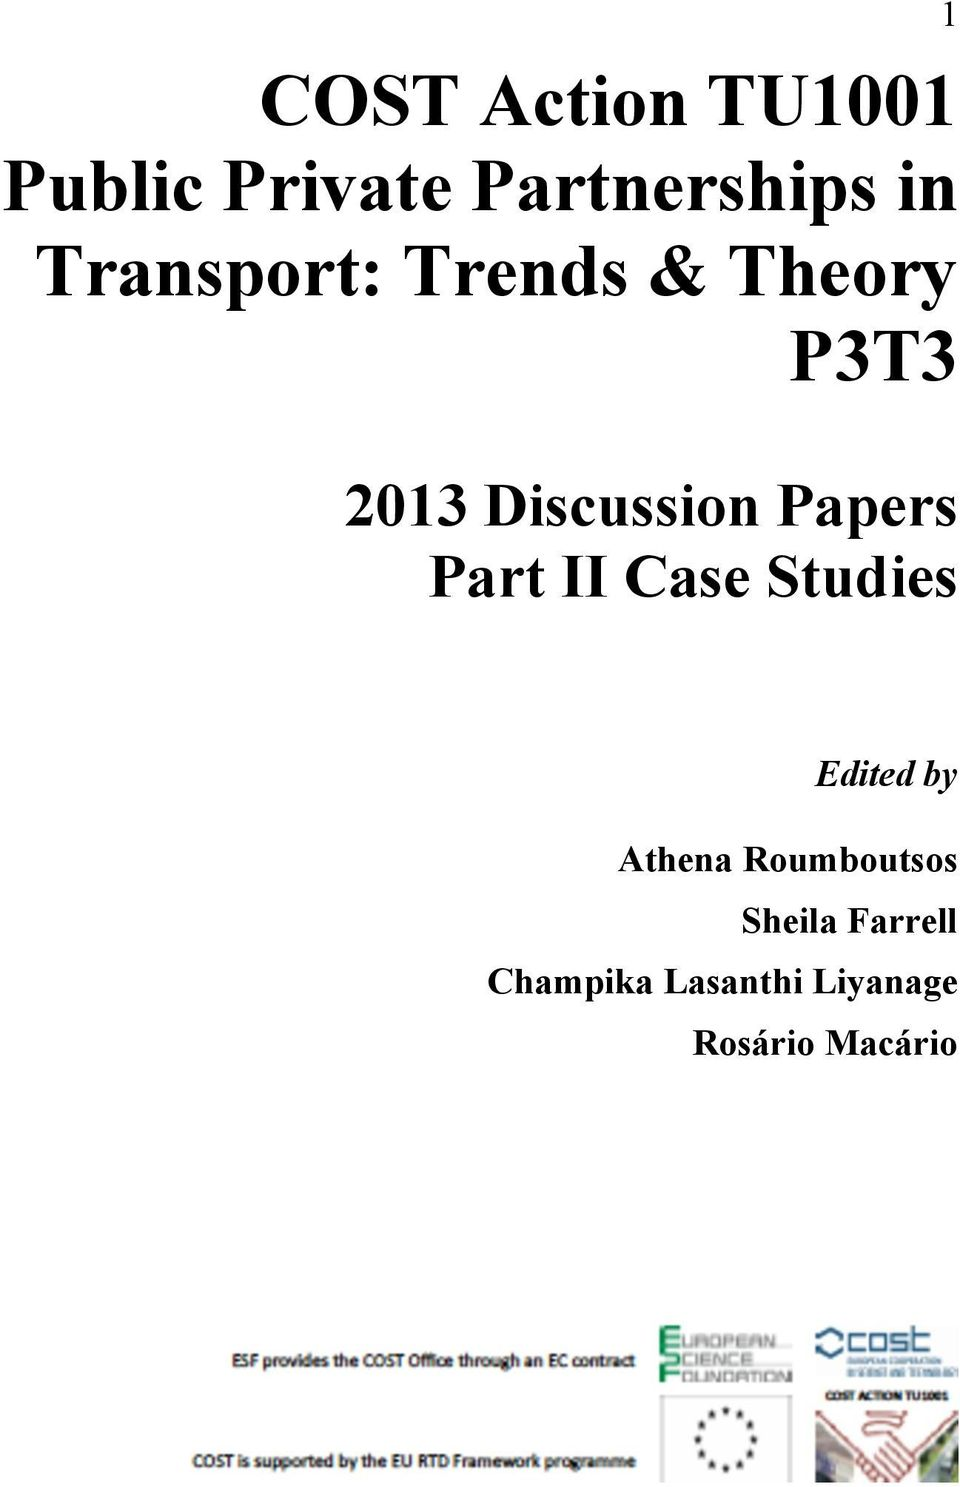 Papers Part II Case Studies Edited by Athena